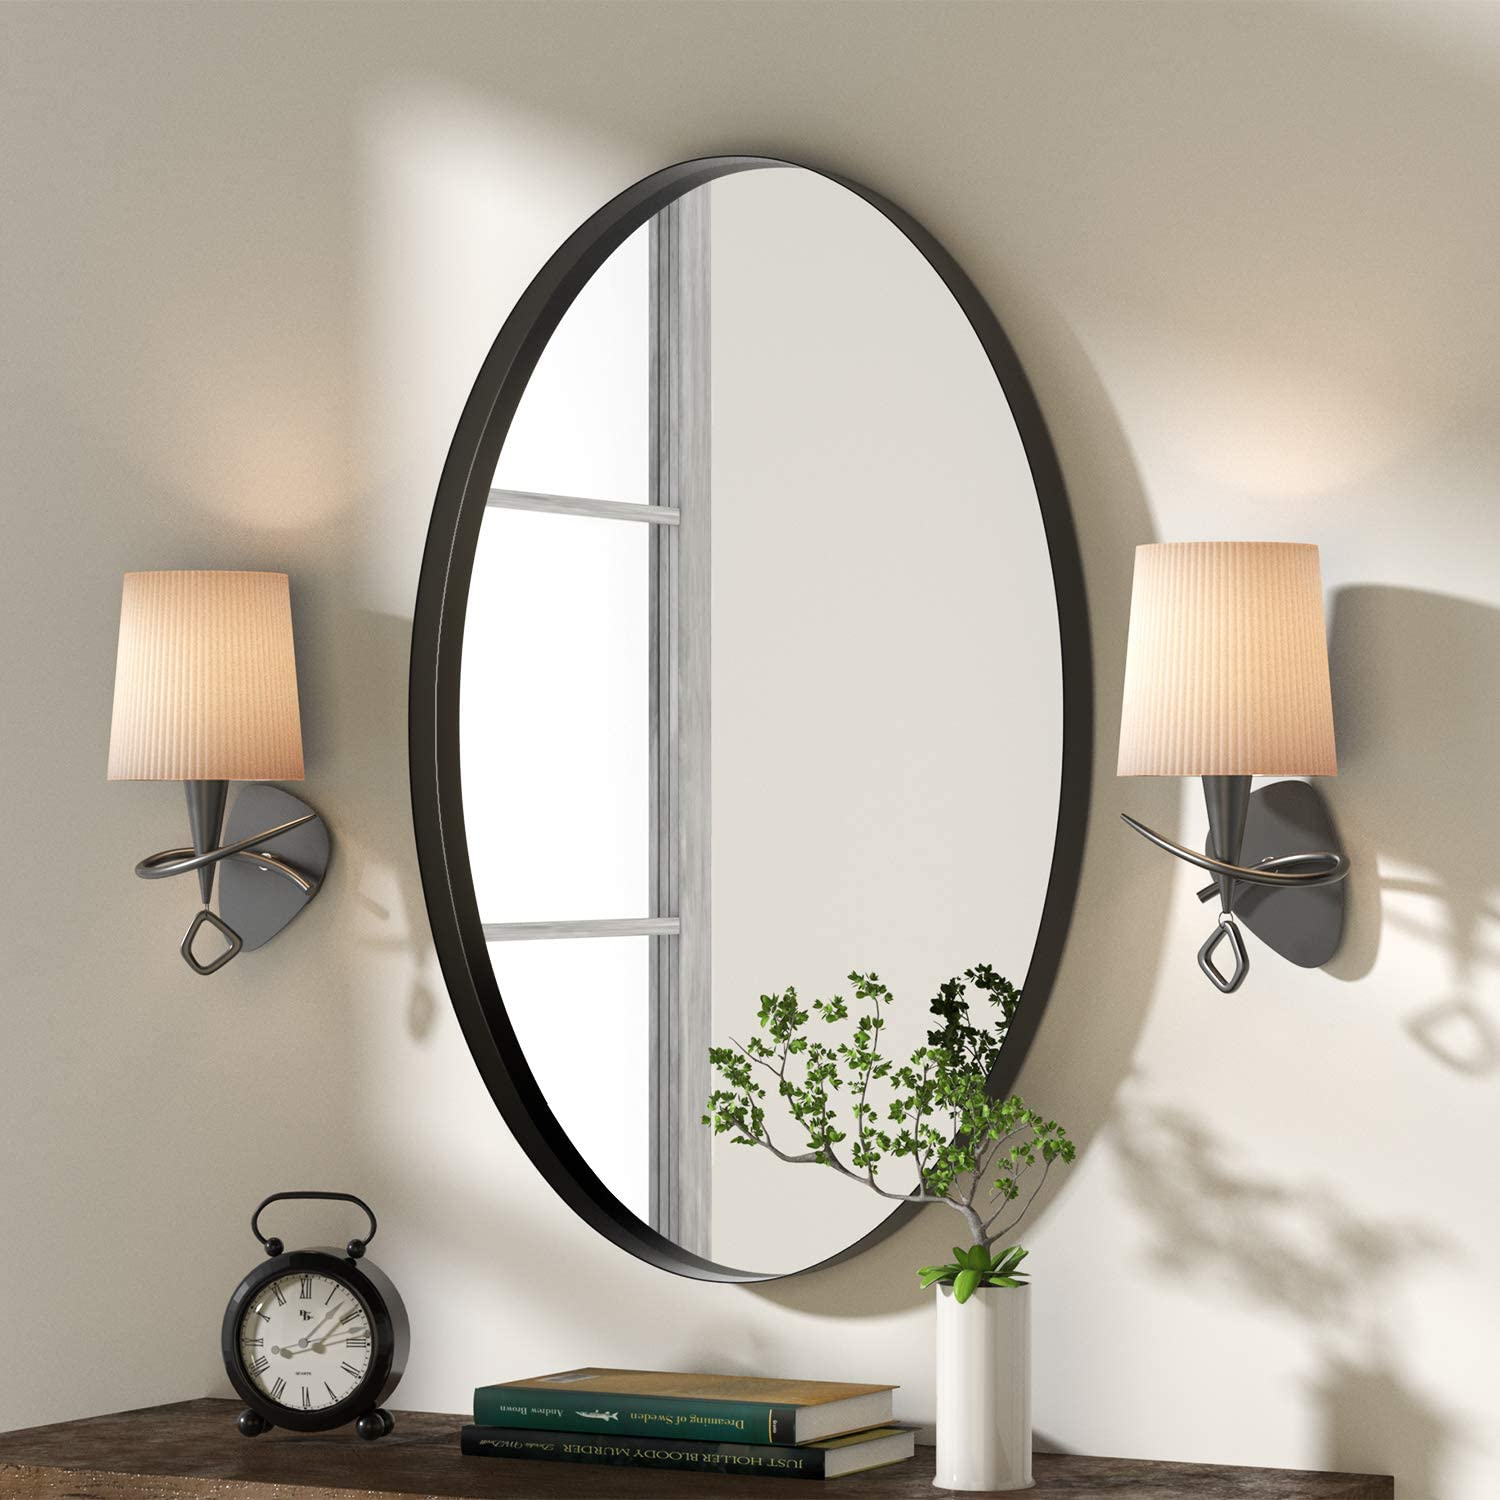 Entryway Wall Mounted 20x28in Black Clean Decor Stainless Steel Framed Mirrors For Vanity Bedroom Nxhome Oval Bathroom Decorative Wall Mirror Living Room Wall Mounted Mirrors Mirrors